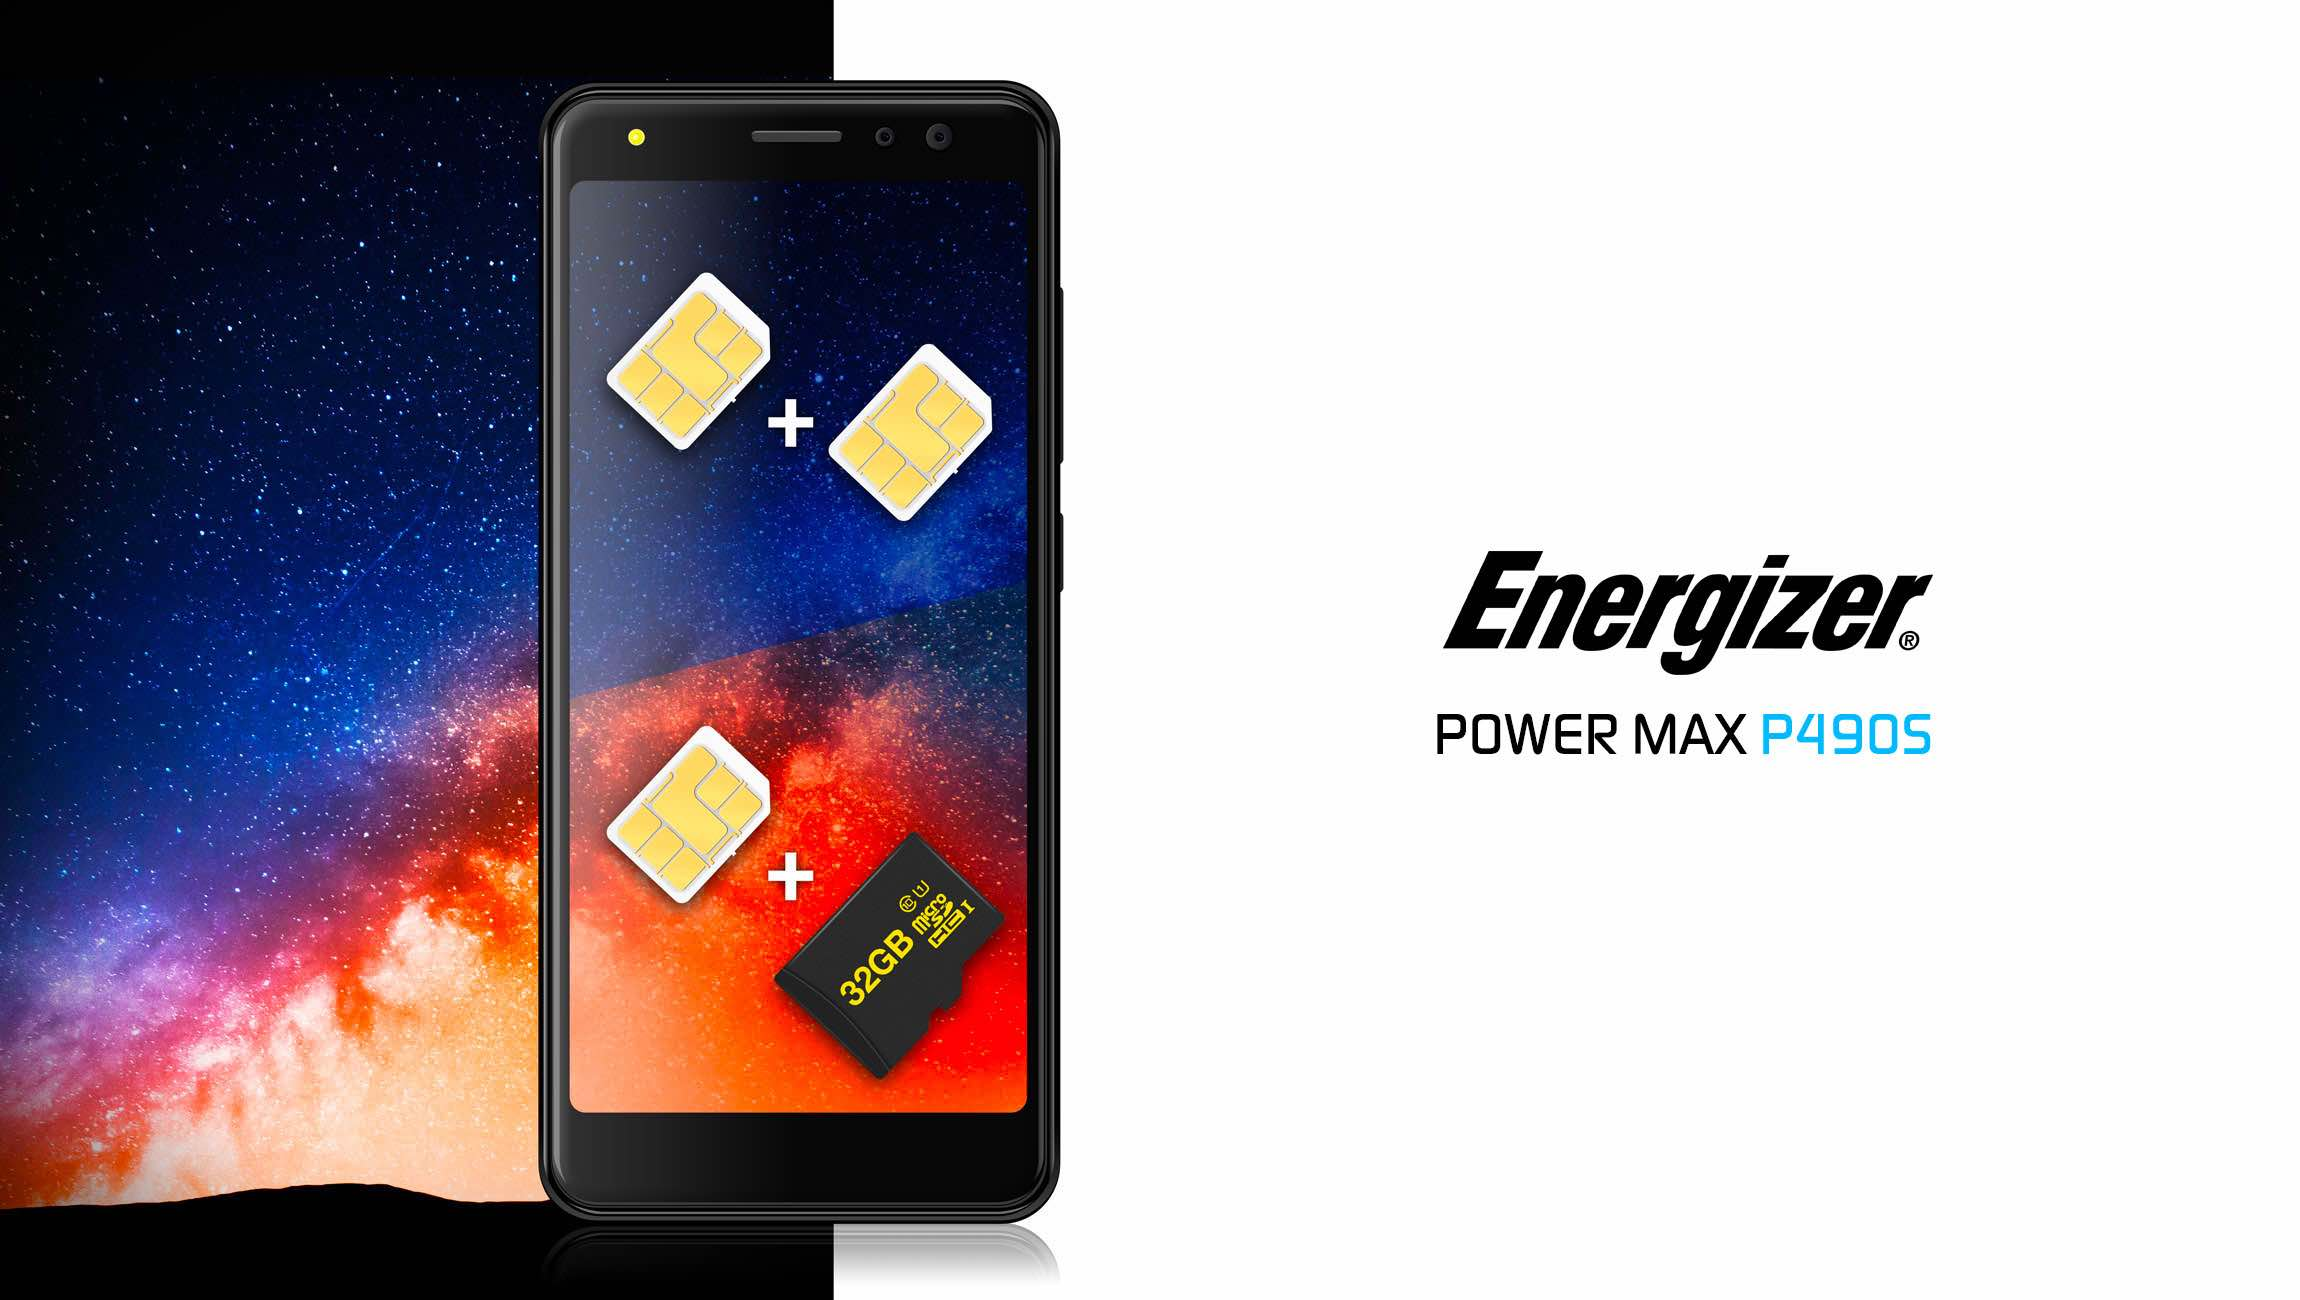 POWER MAX P490S also features dual sim card